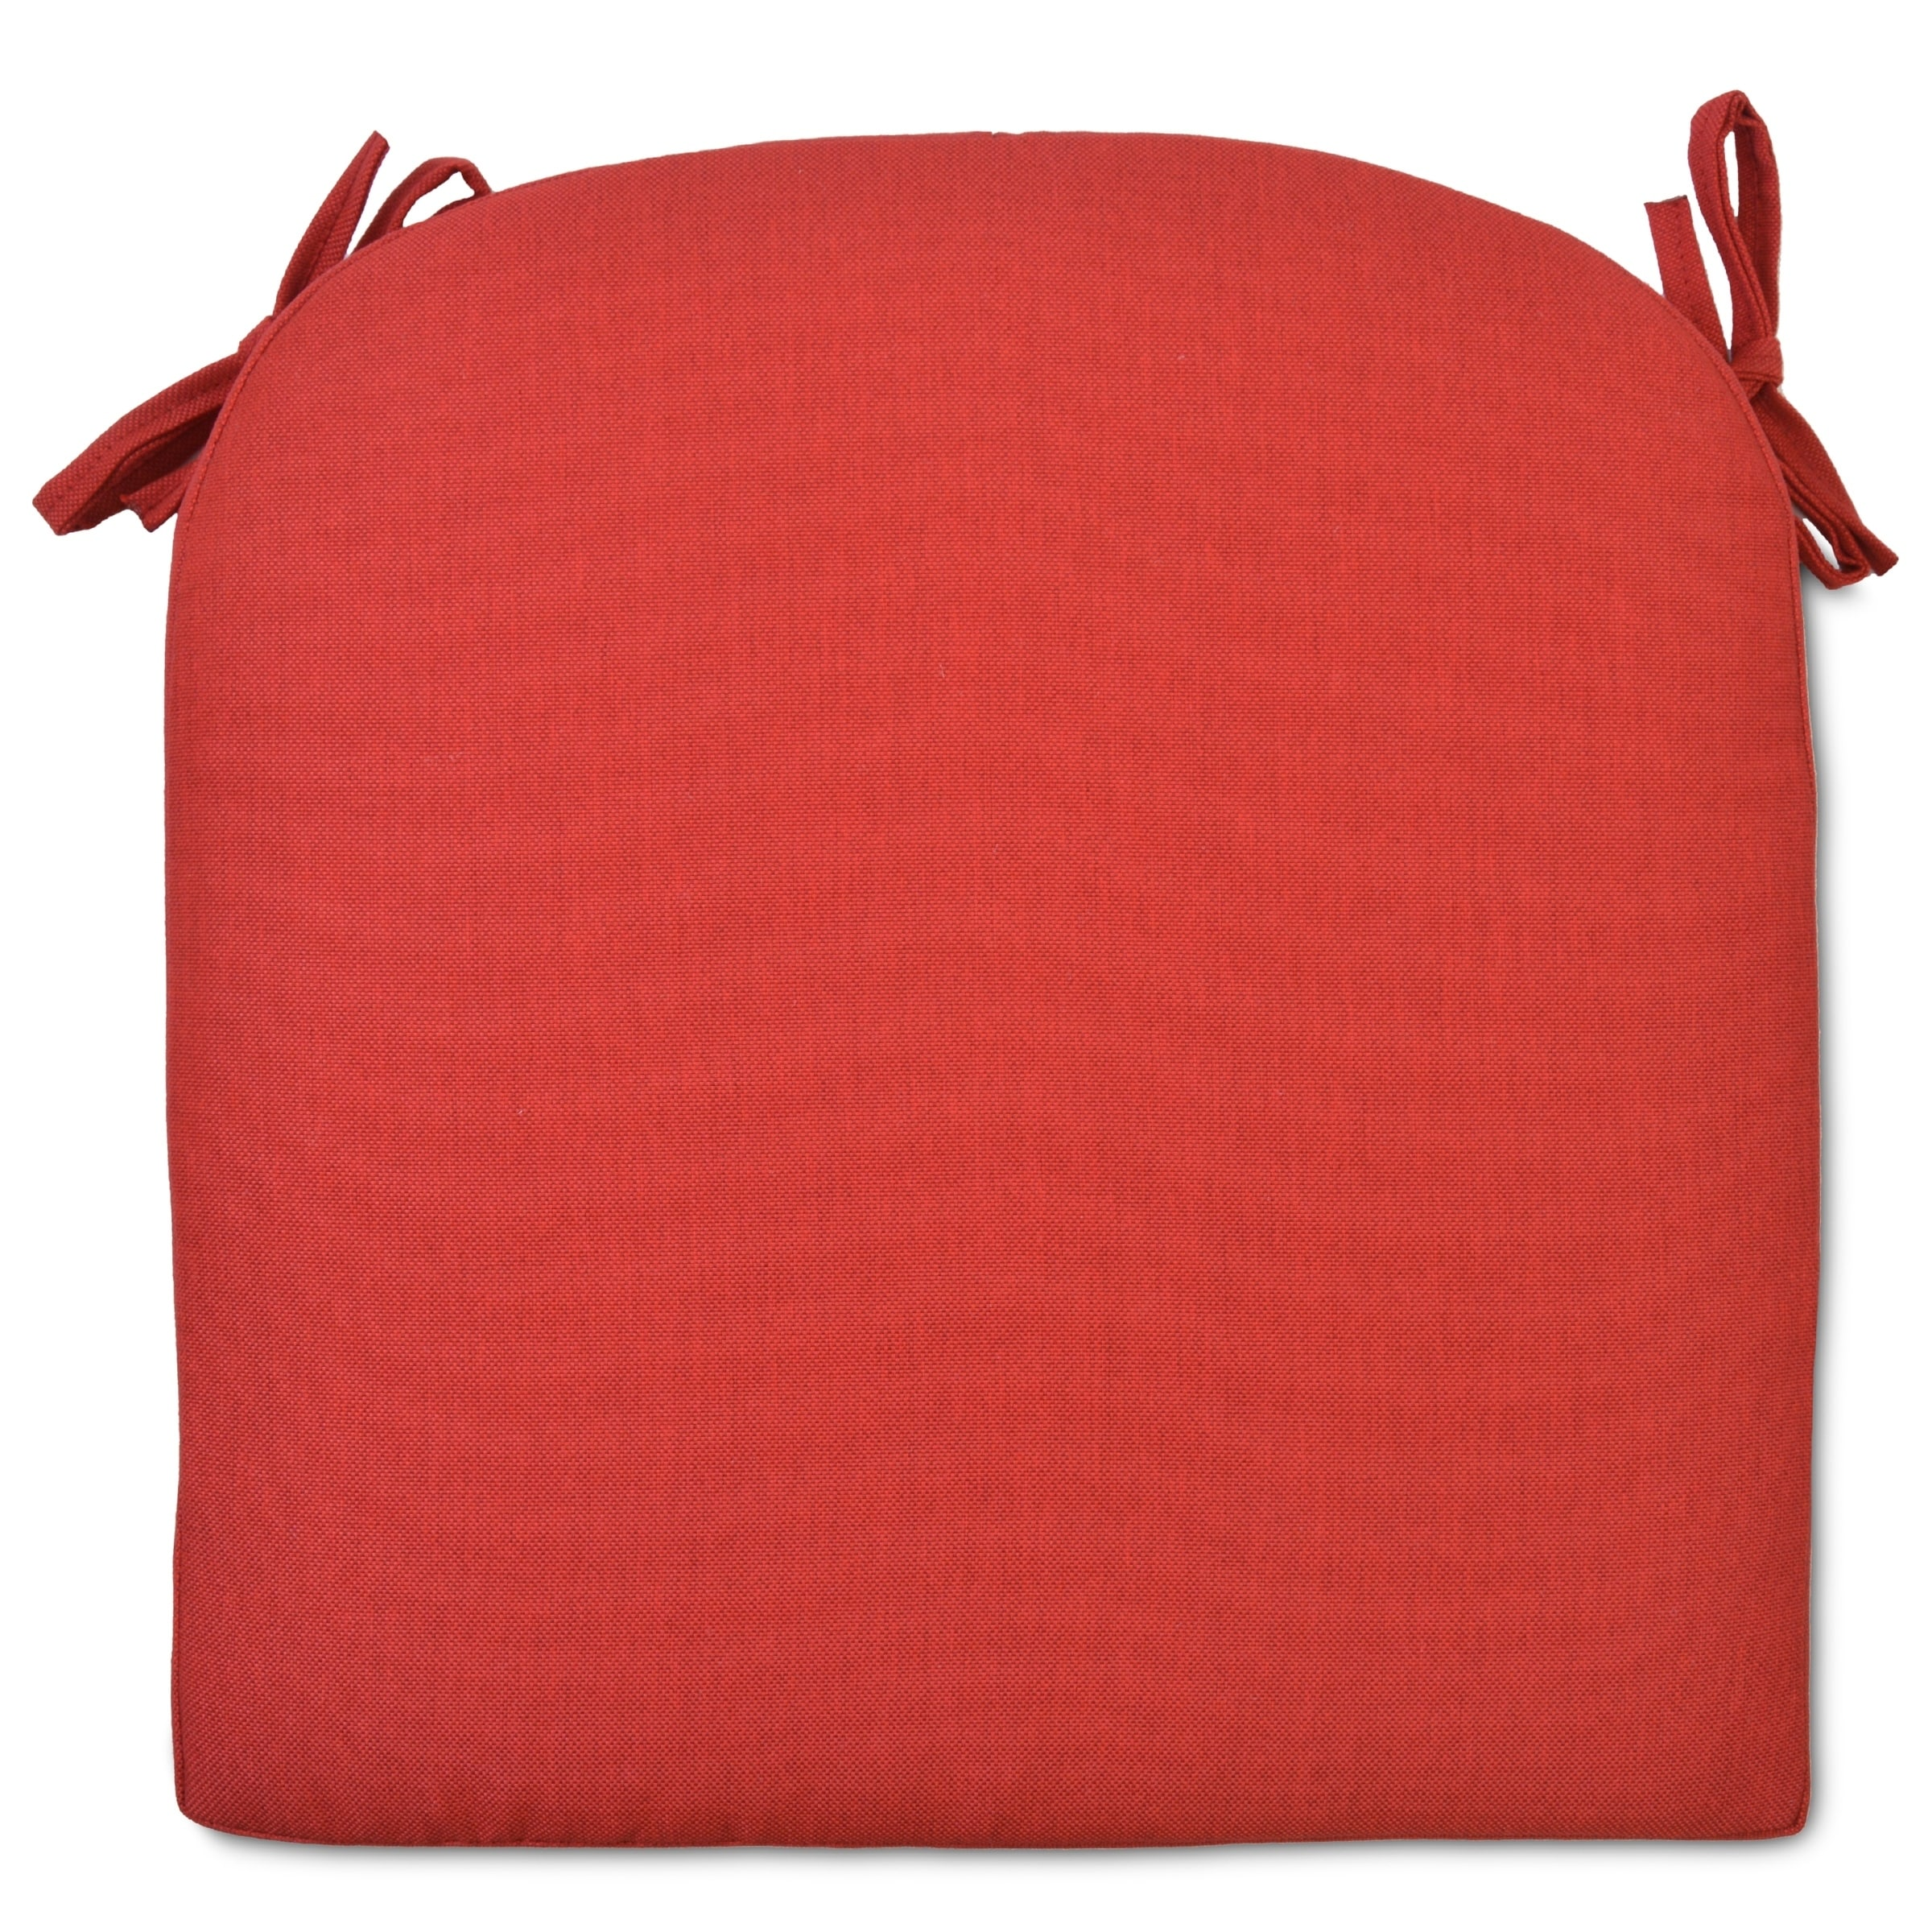 Shop Round Back Outdoor Seat Cushion Free Shipping On Orders Over